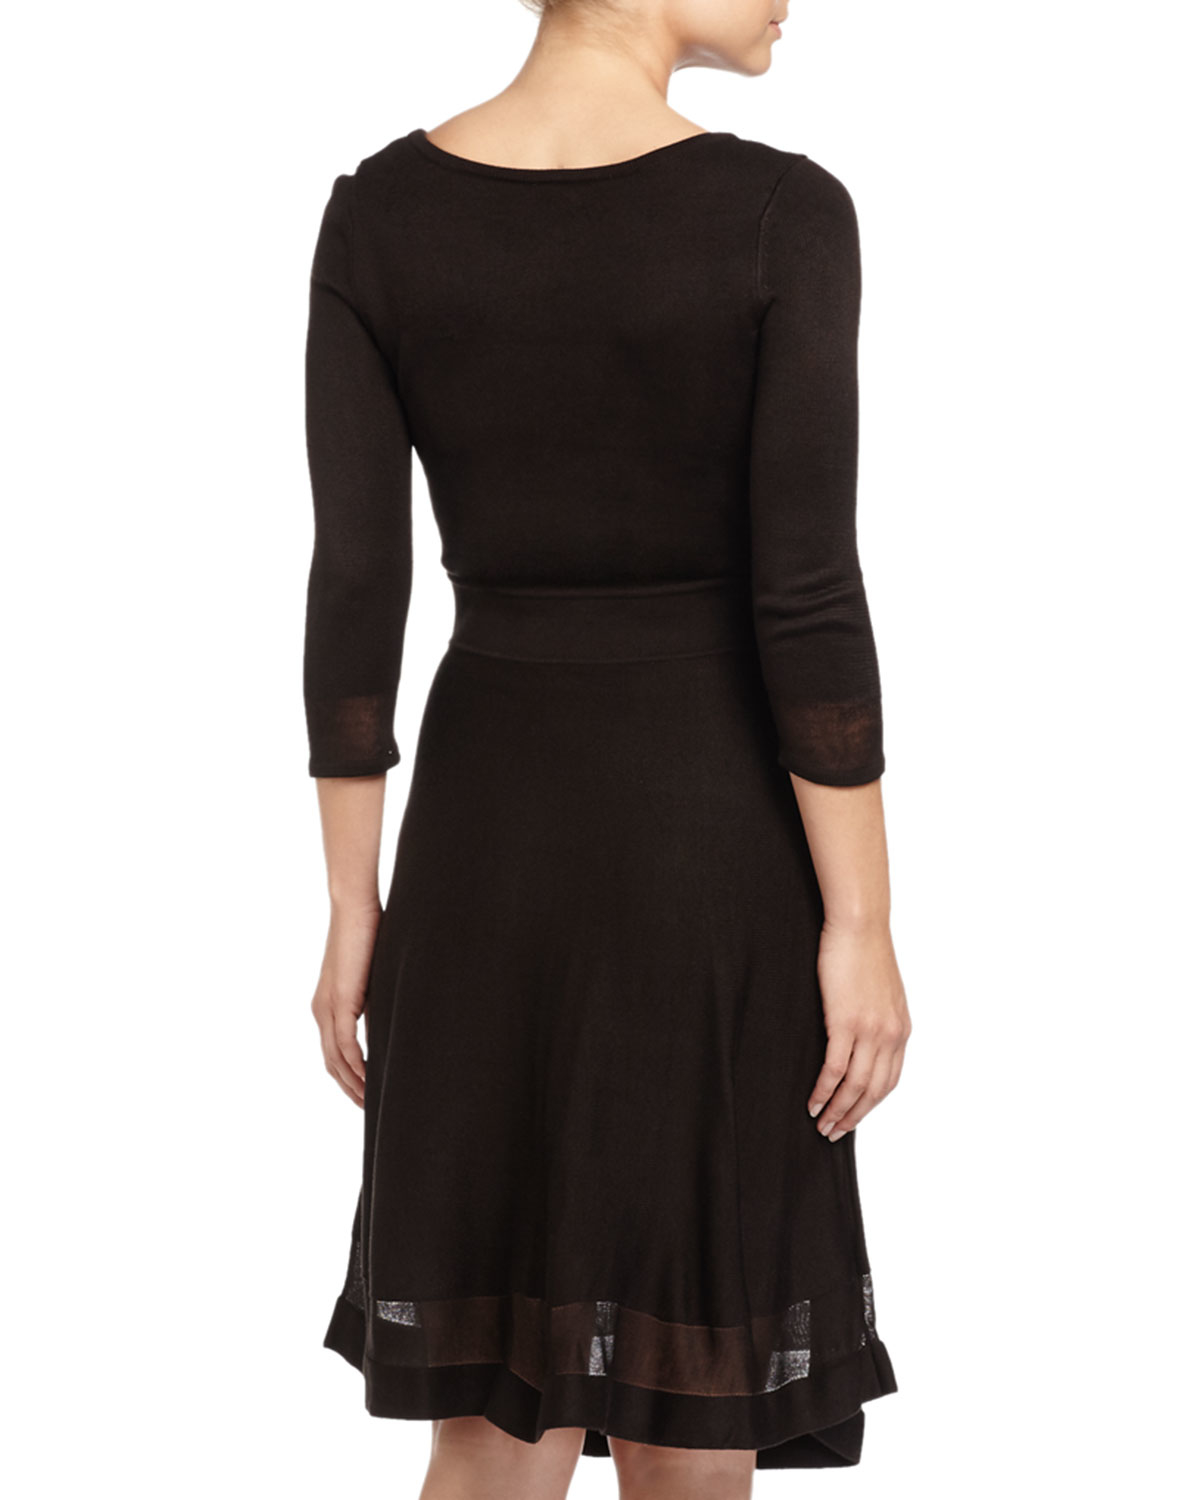 Marc New York 3 4 Sleeve Fit And Flare Sweater Dress In